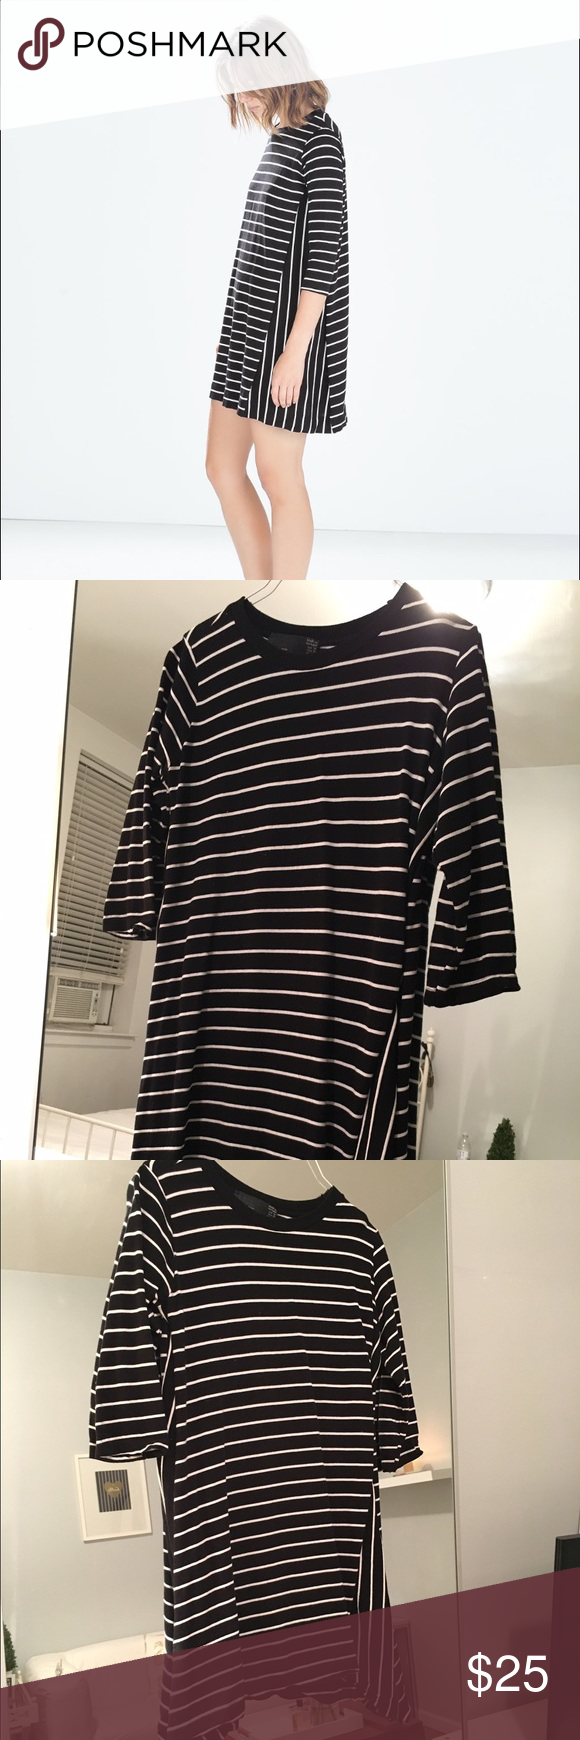 Zara long sleeve striped dress gently used black and white striped